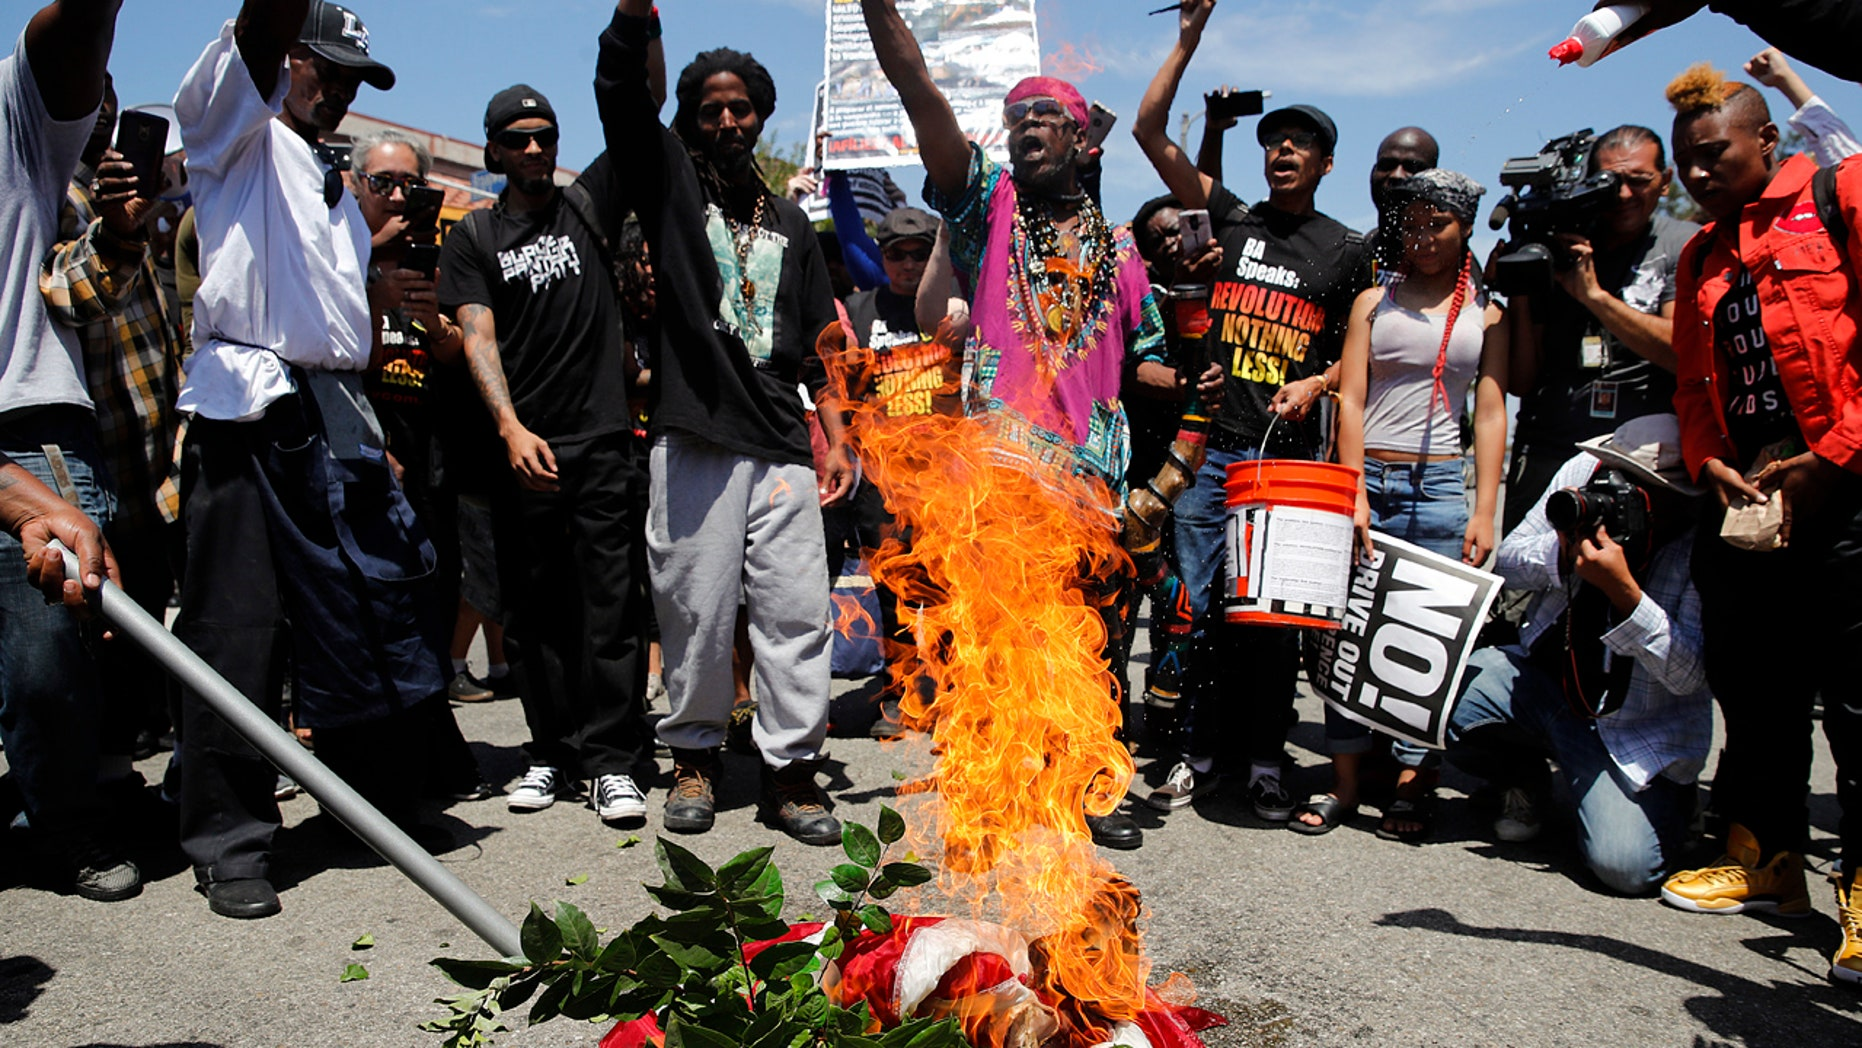 People chant slogans as they burn a U.S. flag outside the Los Angeles office of U.S. Rep. Maxine Waters, Thursday, July 19, 2018, in Los Angeles.